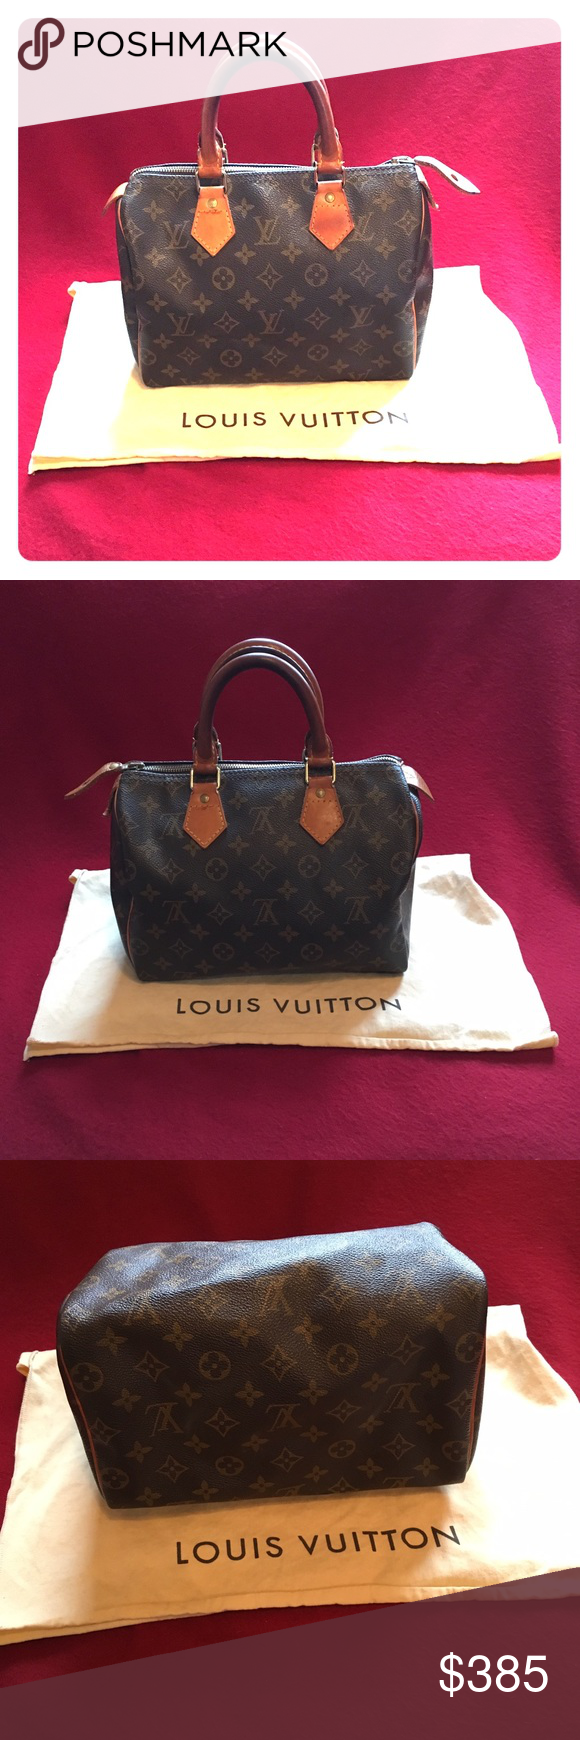 Louis Vuitton Speedy 25❤️ Amazing LV speedy, always authentic. Beautiful honey patina, canvas and piping in excellent condition, no other flaws besides normal gentle wear as shown. Not sure I want to let this lovely go, SO price is not too flexible, esp since this is a vintage beauty in gorgeous condition - hard to come across! LV dust bag not included, will include a different dust bag. Date code reads: FH0922 Louis Vuitton Bags Satchels